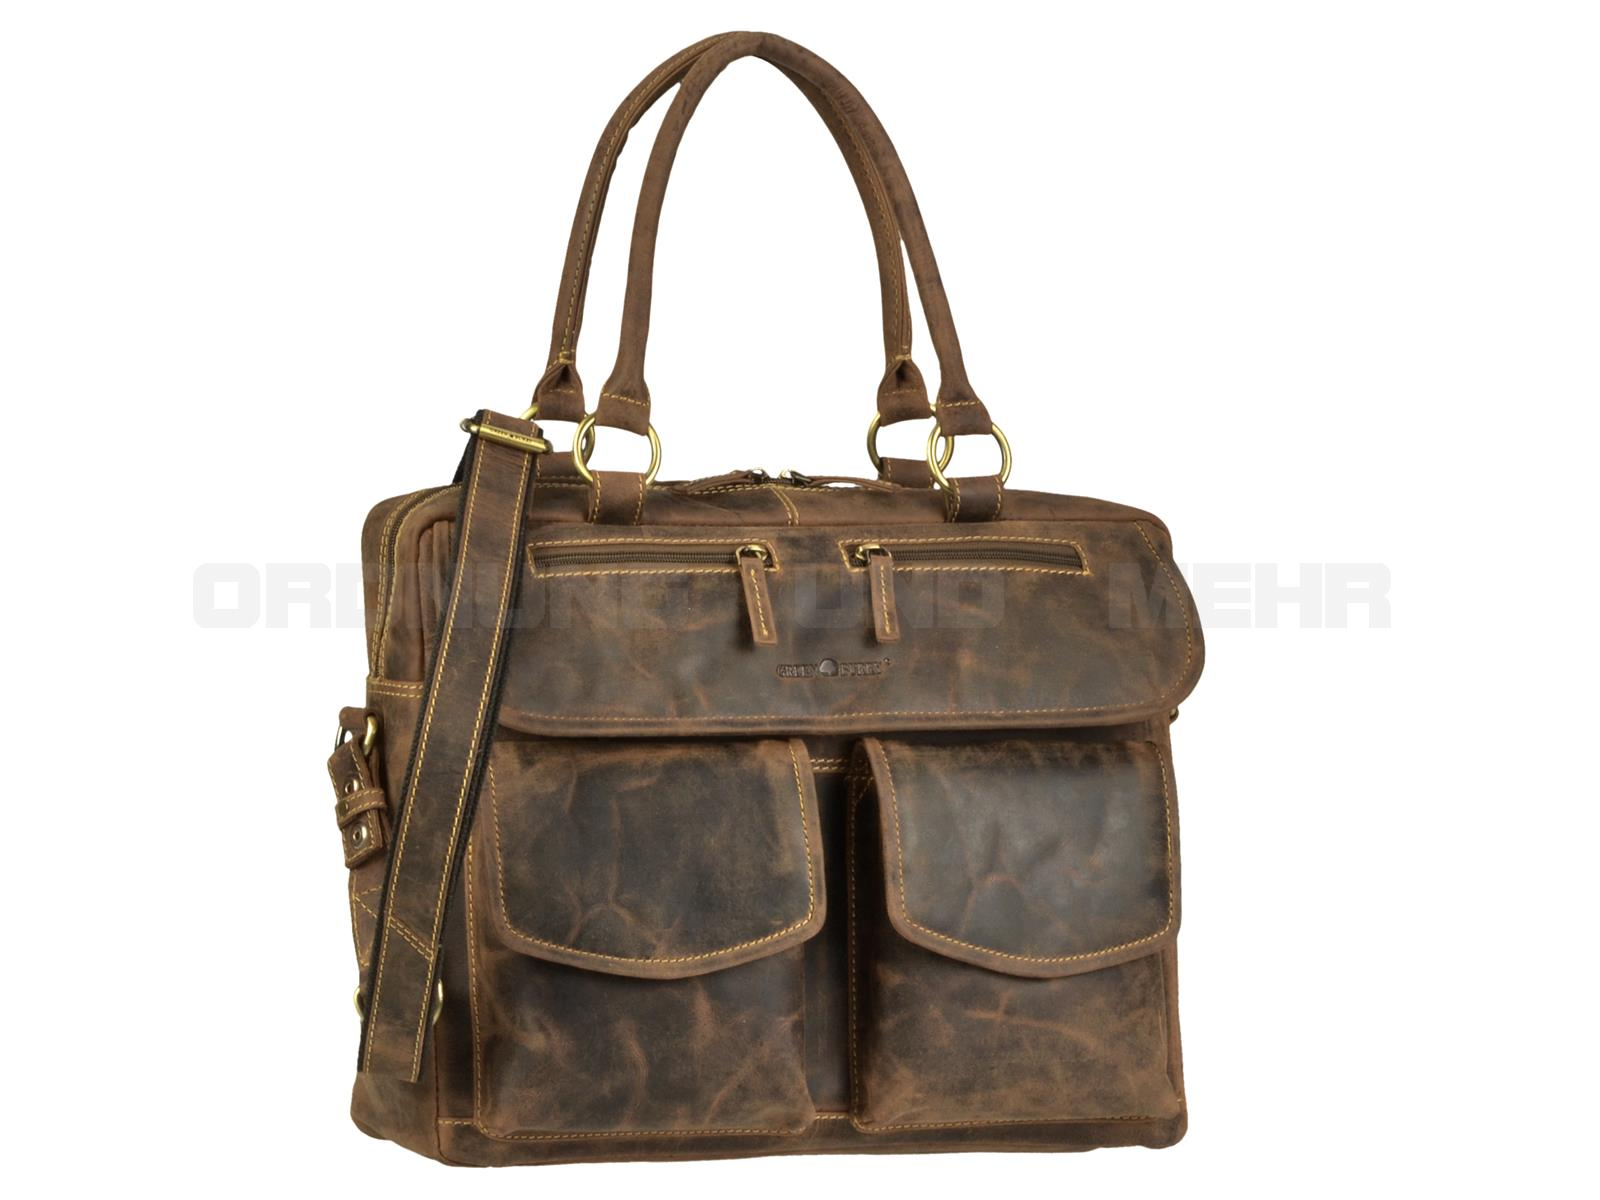 Greenburry Business Ledertasche für Damen 1830-25 aus der VINTAGE Serie in antikbraun